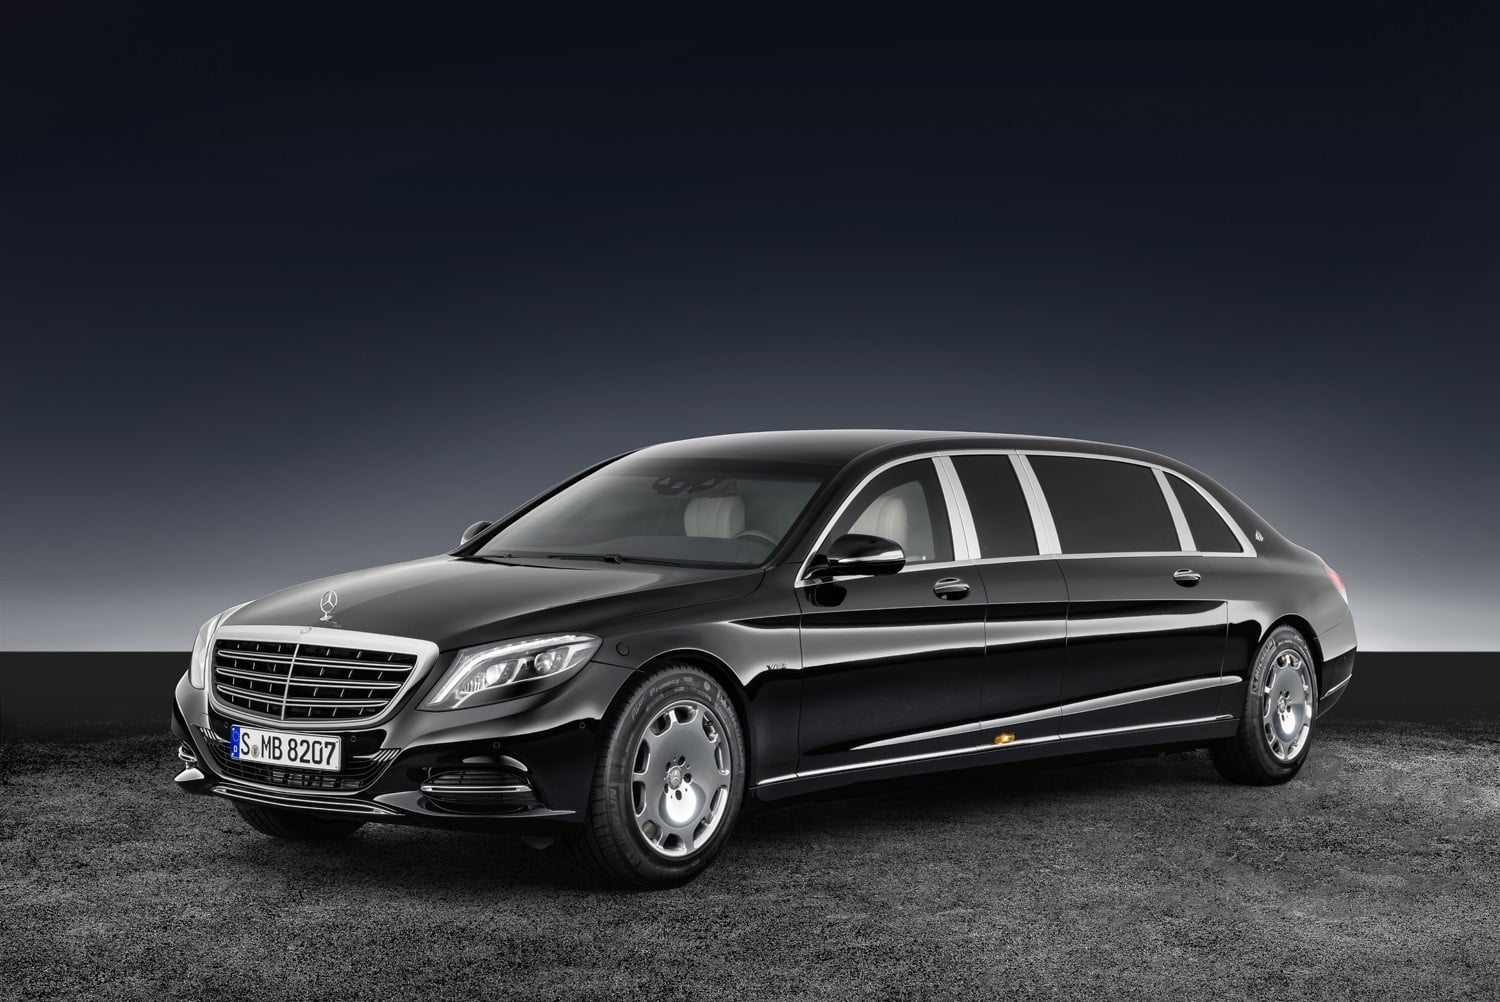 MercedesMaybachs Armored S Is Built Like A Tank With A Price - 1 million mercedes coolest armoured vehicle ever